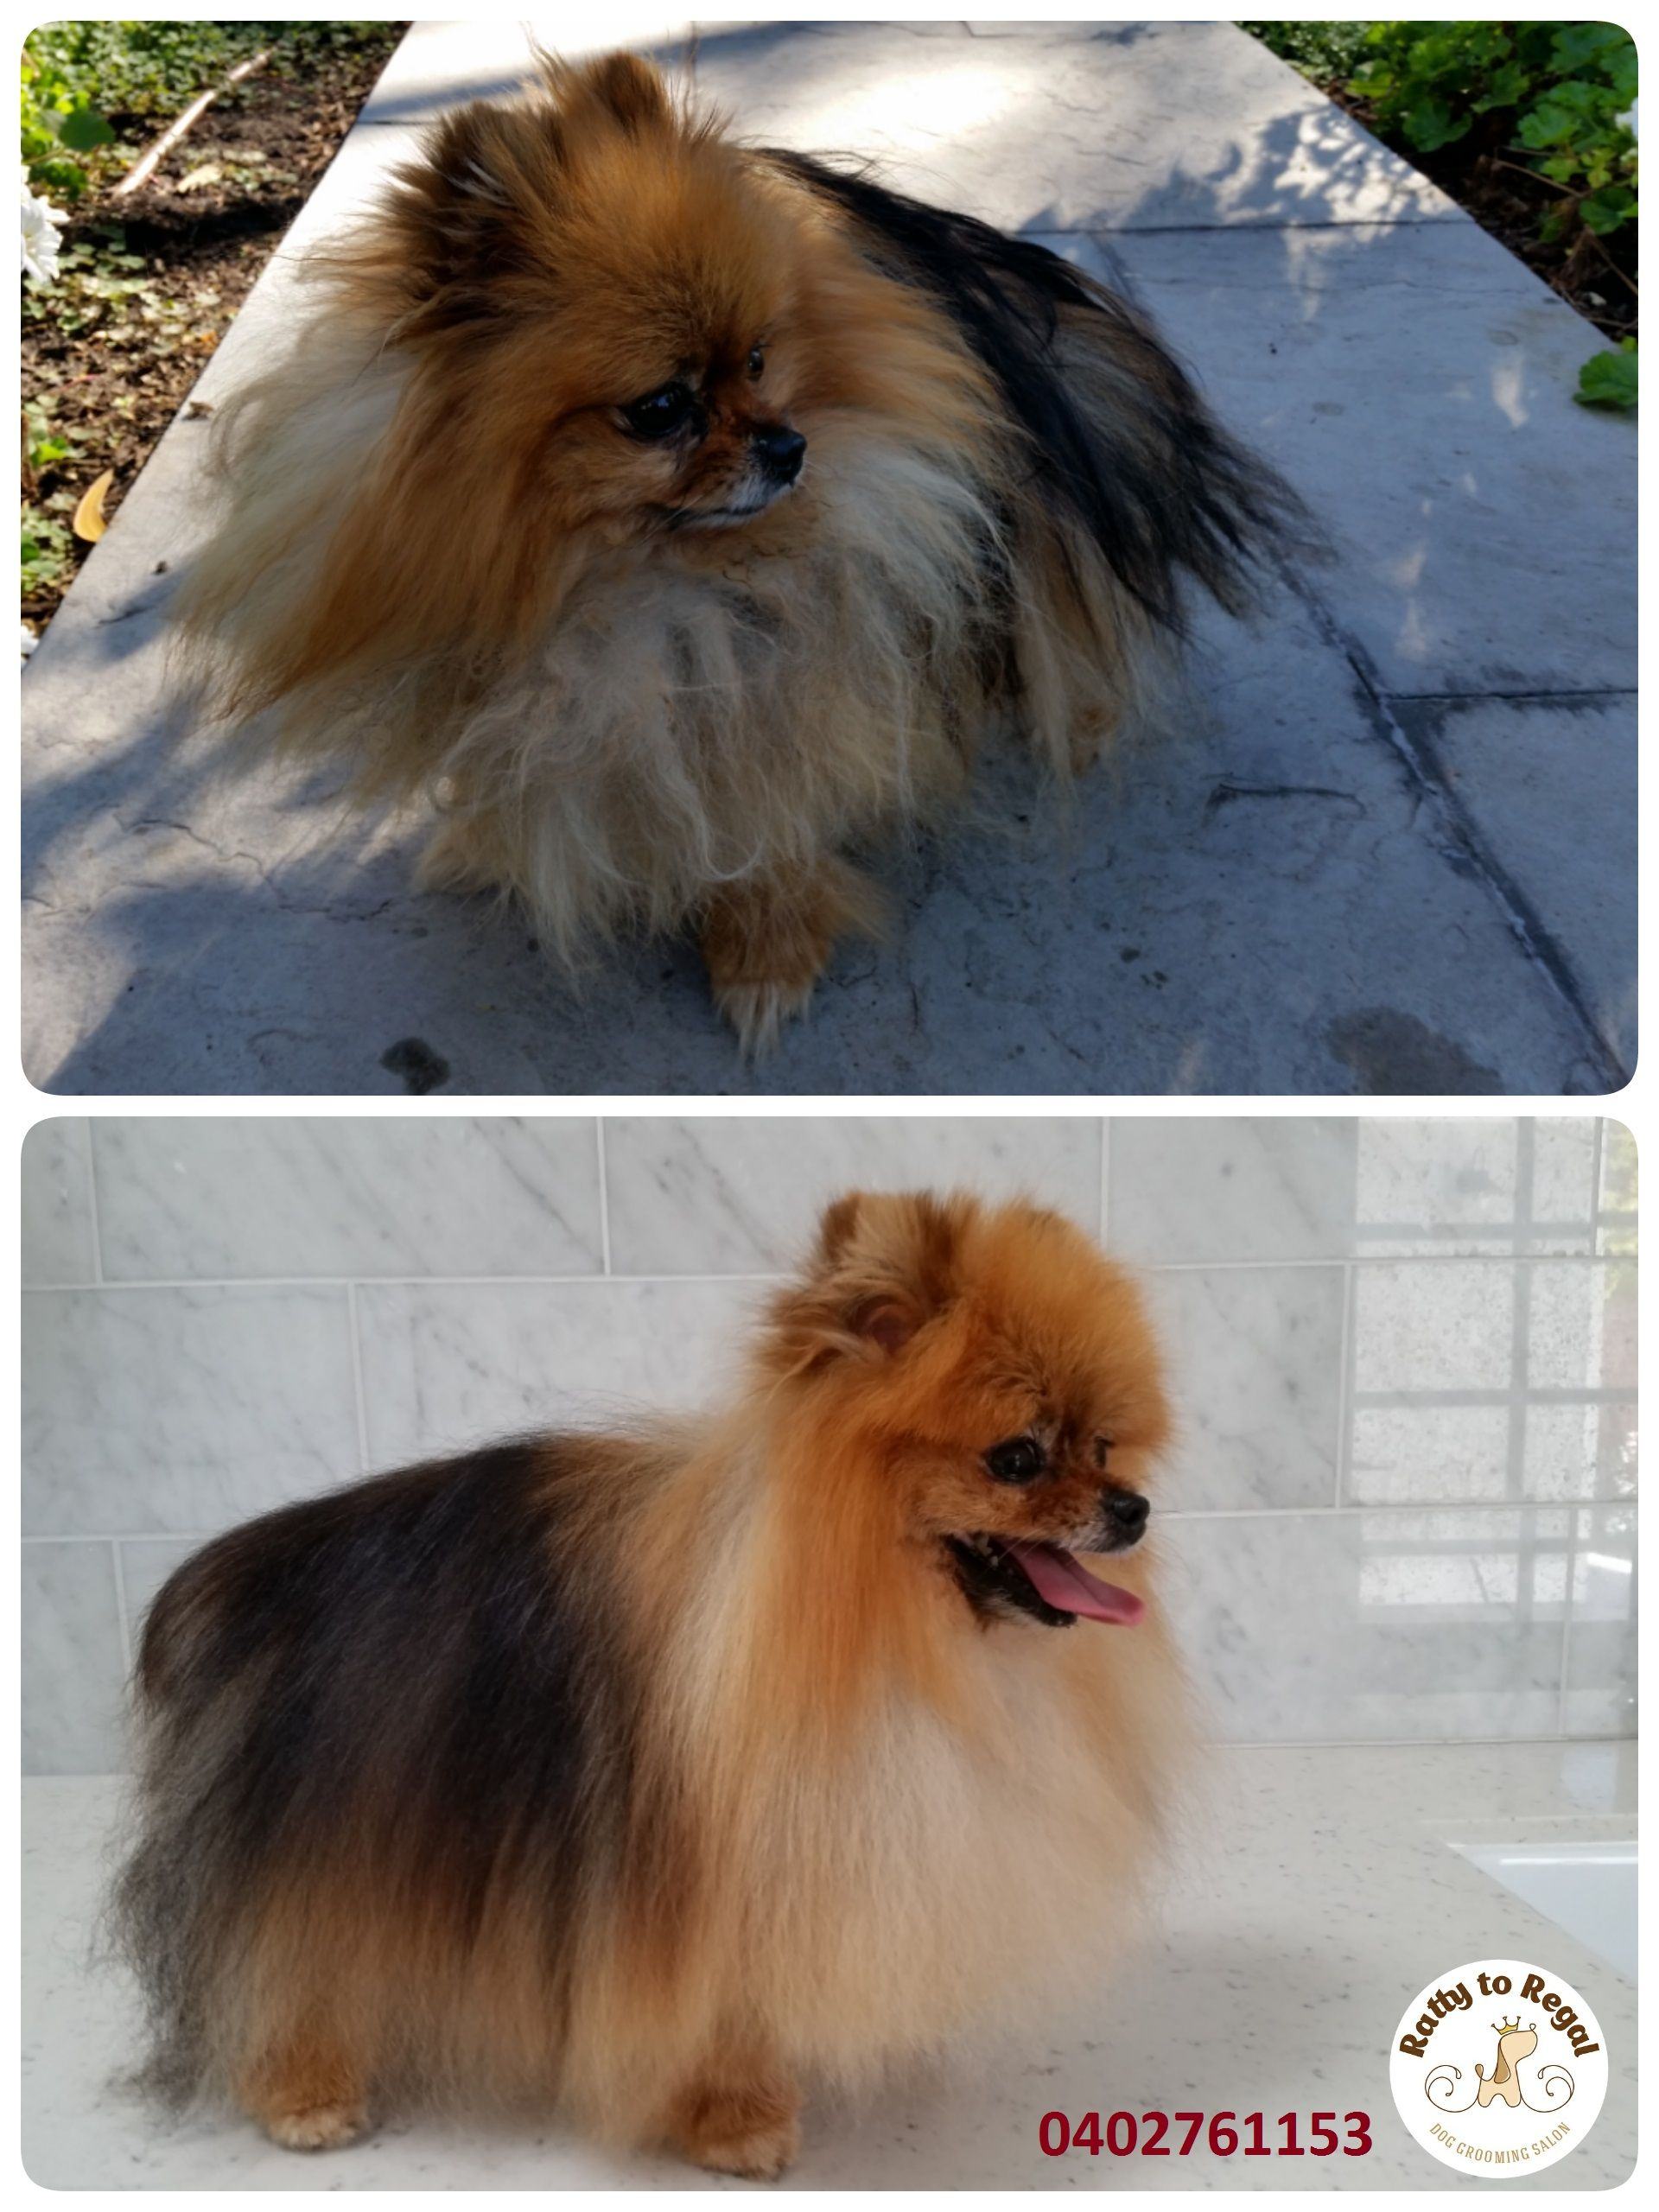 If you love❤️ super tiny breeds take a look at this girl!🐞 Her name is Frankii.  She is 5 years young Pomeranian and her weight is only 1.6 kg! She is so tiny that you just can put her in your pocket and go for a walk  🌳 Frankii resembles a tiny lion🦁 with her beautiful fluffy coat that's the colour of honey 🍯 Her mum, Lauren, brought her to me for Tidy Up Service. It includes a proper brush out to remove the loose undercoat, warm bath with massage, blow dry, tidy up on the face and…